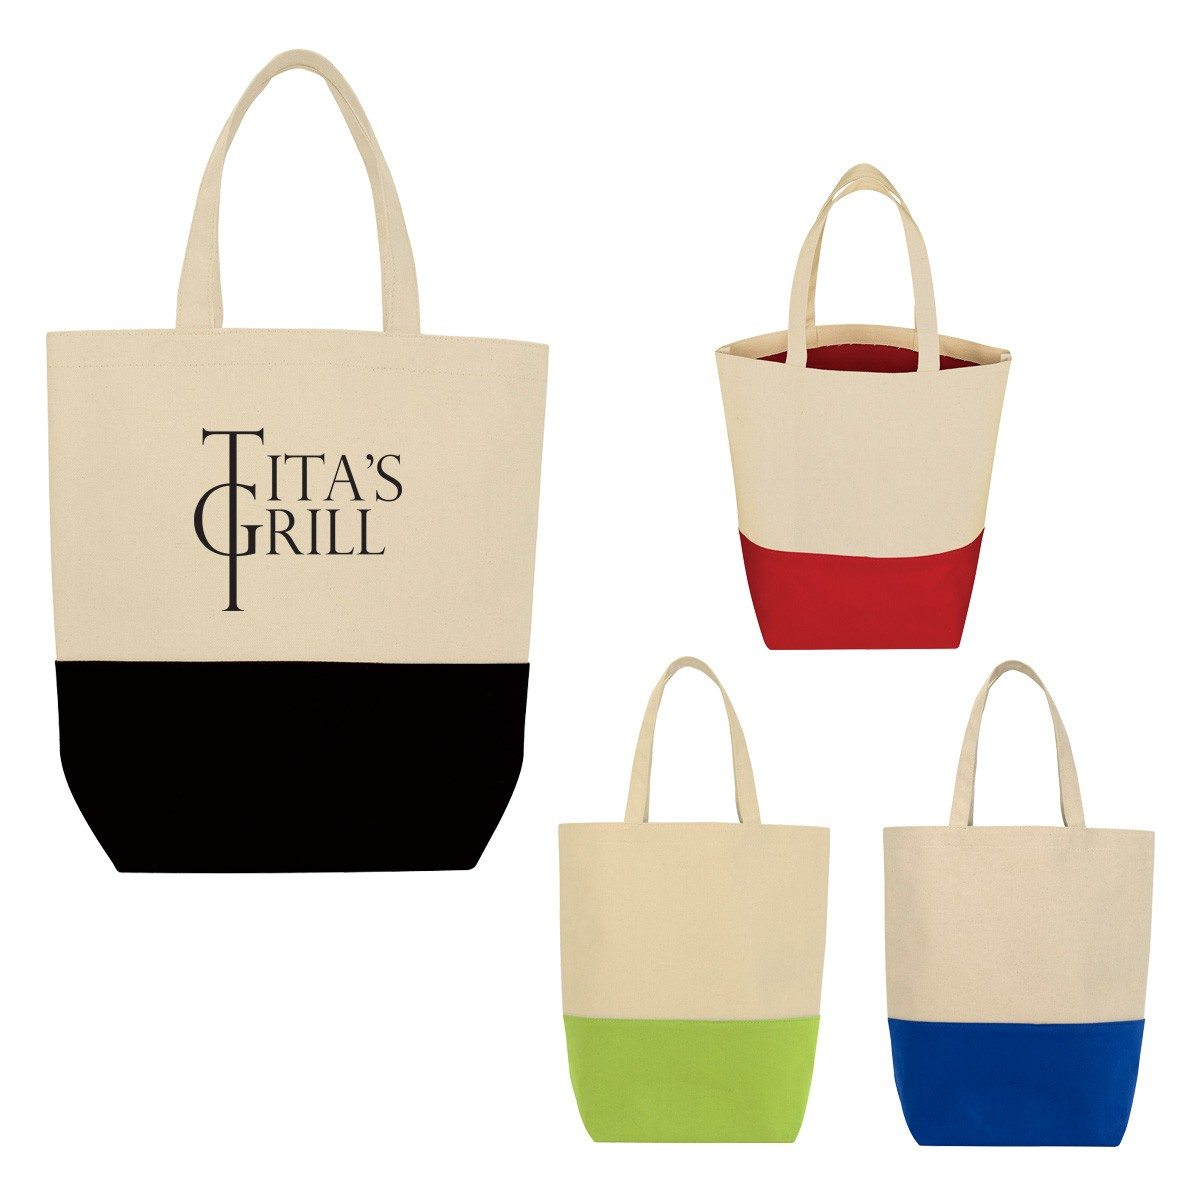 2019 Quick Seller Tote-And-Go Canvas Cotton Tote Bag